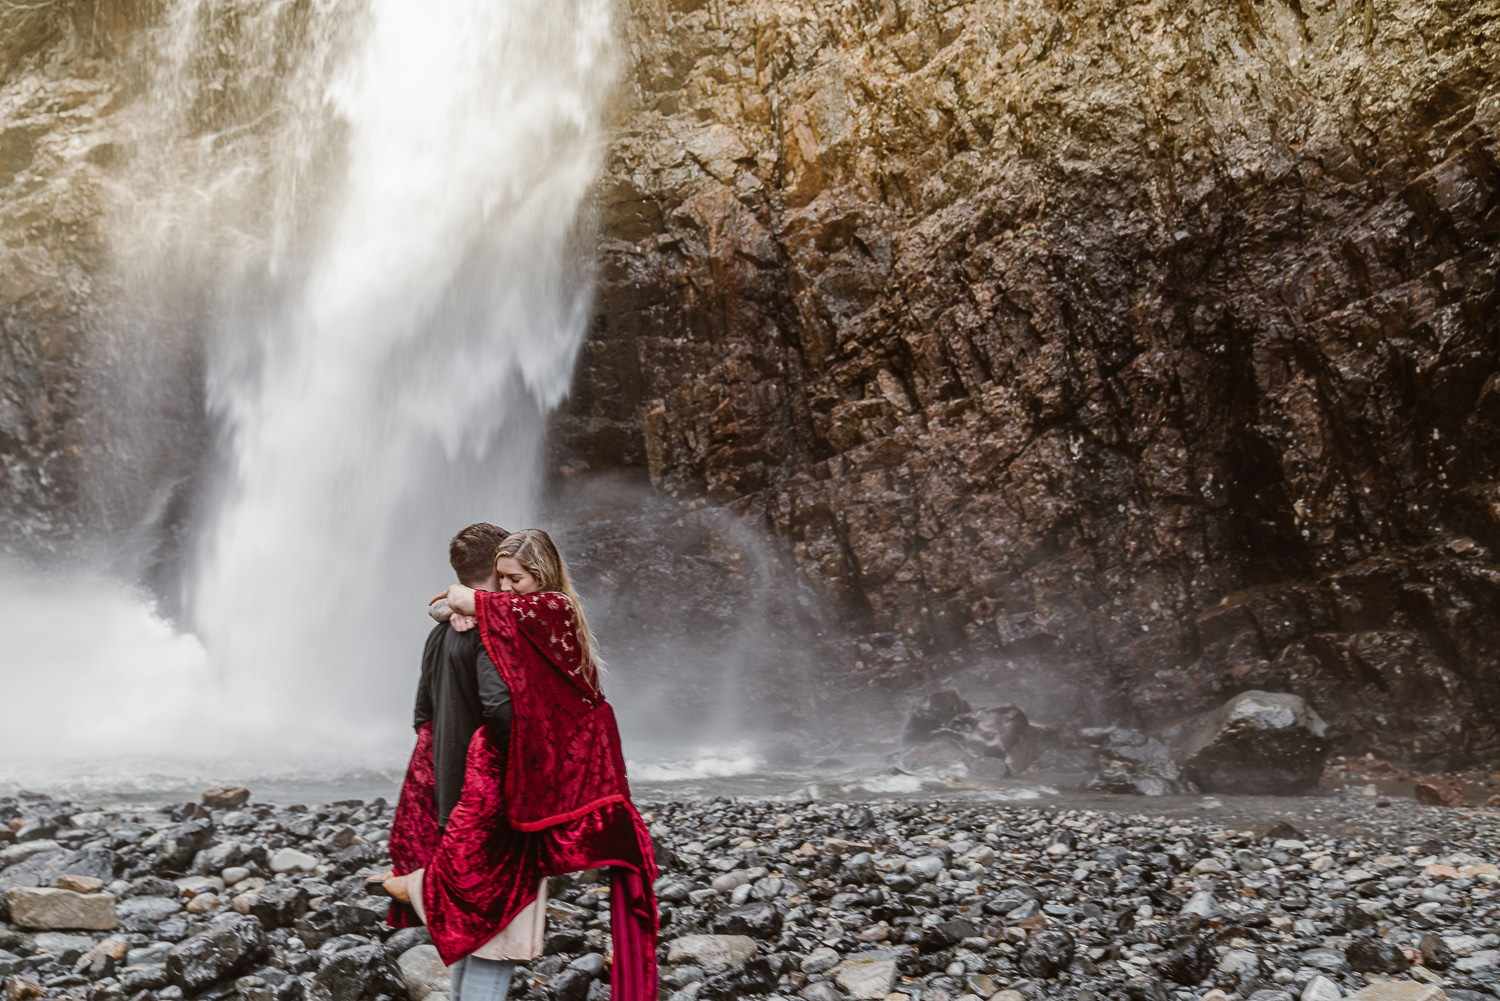 PNW Elopement Photographer, Eloping in nature, Couple celebrates their love for each other at the base of Franklin Falls